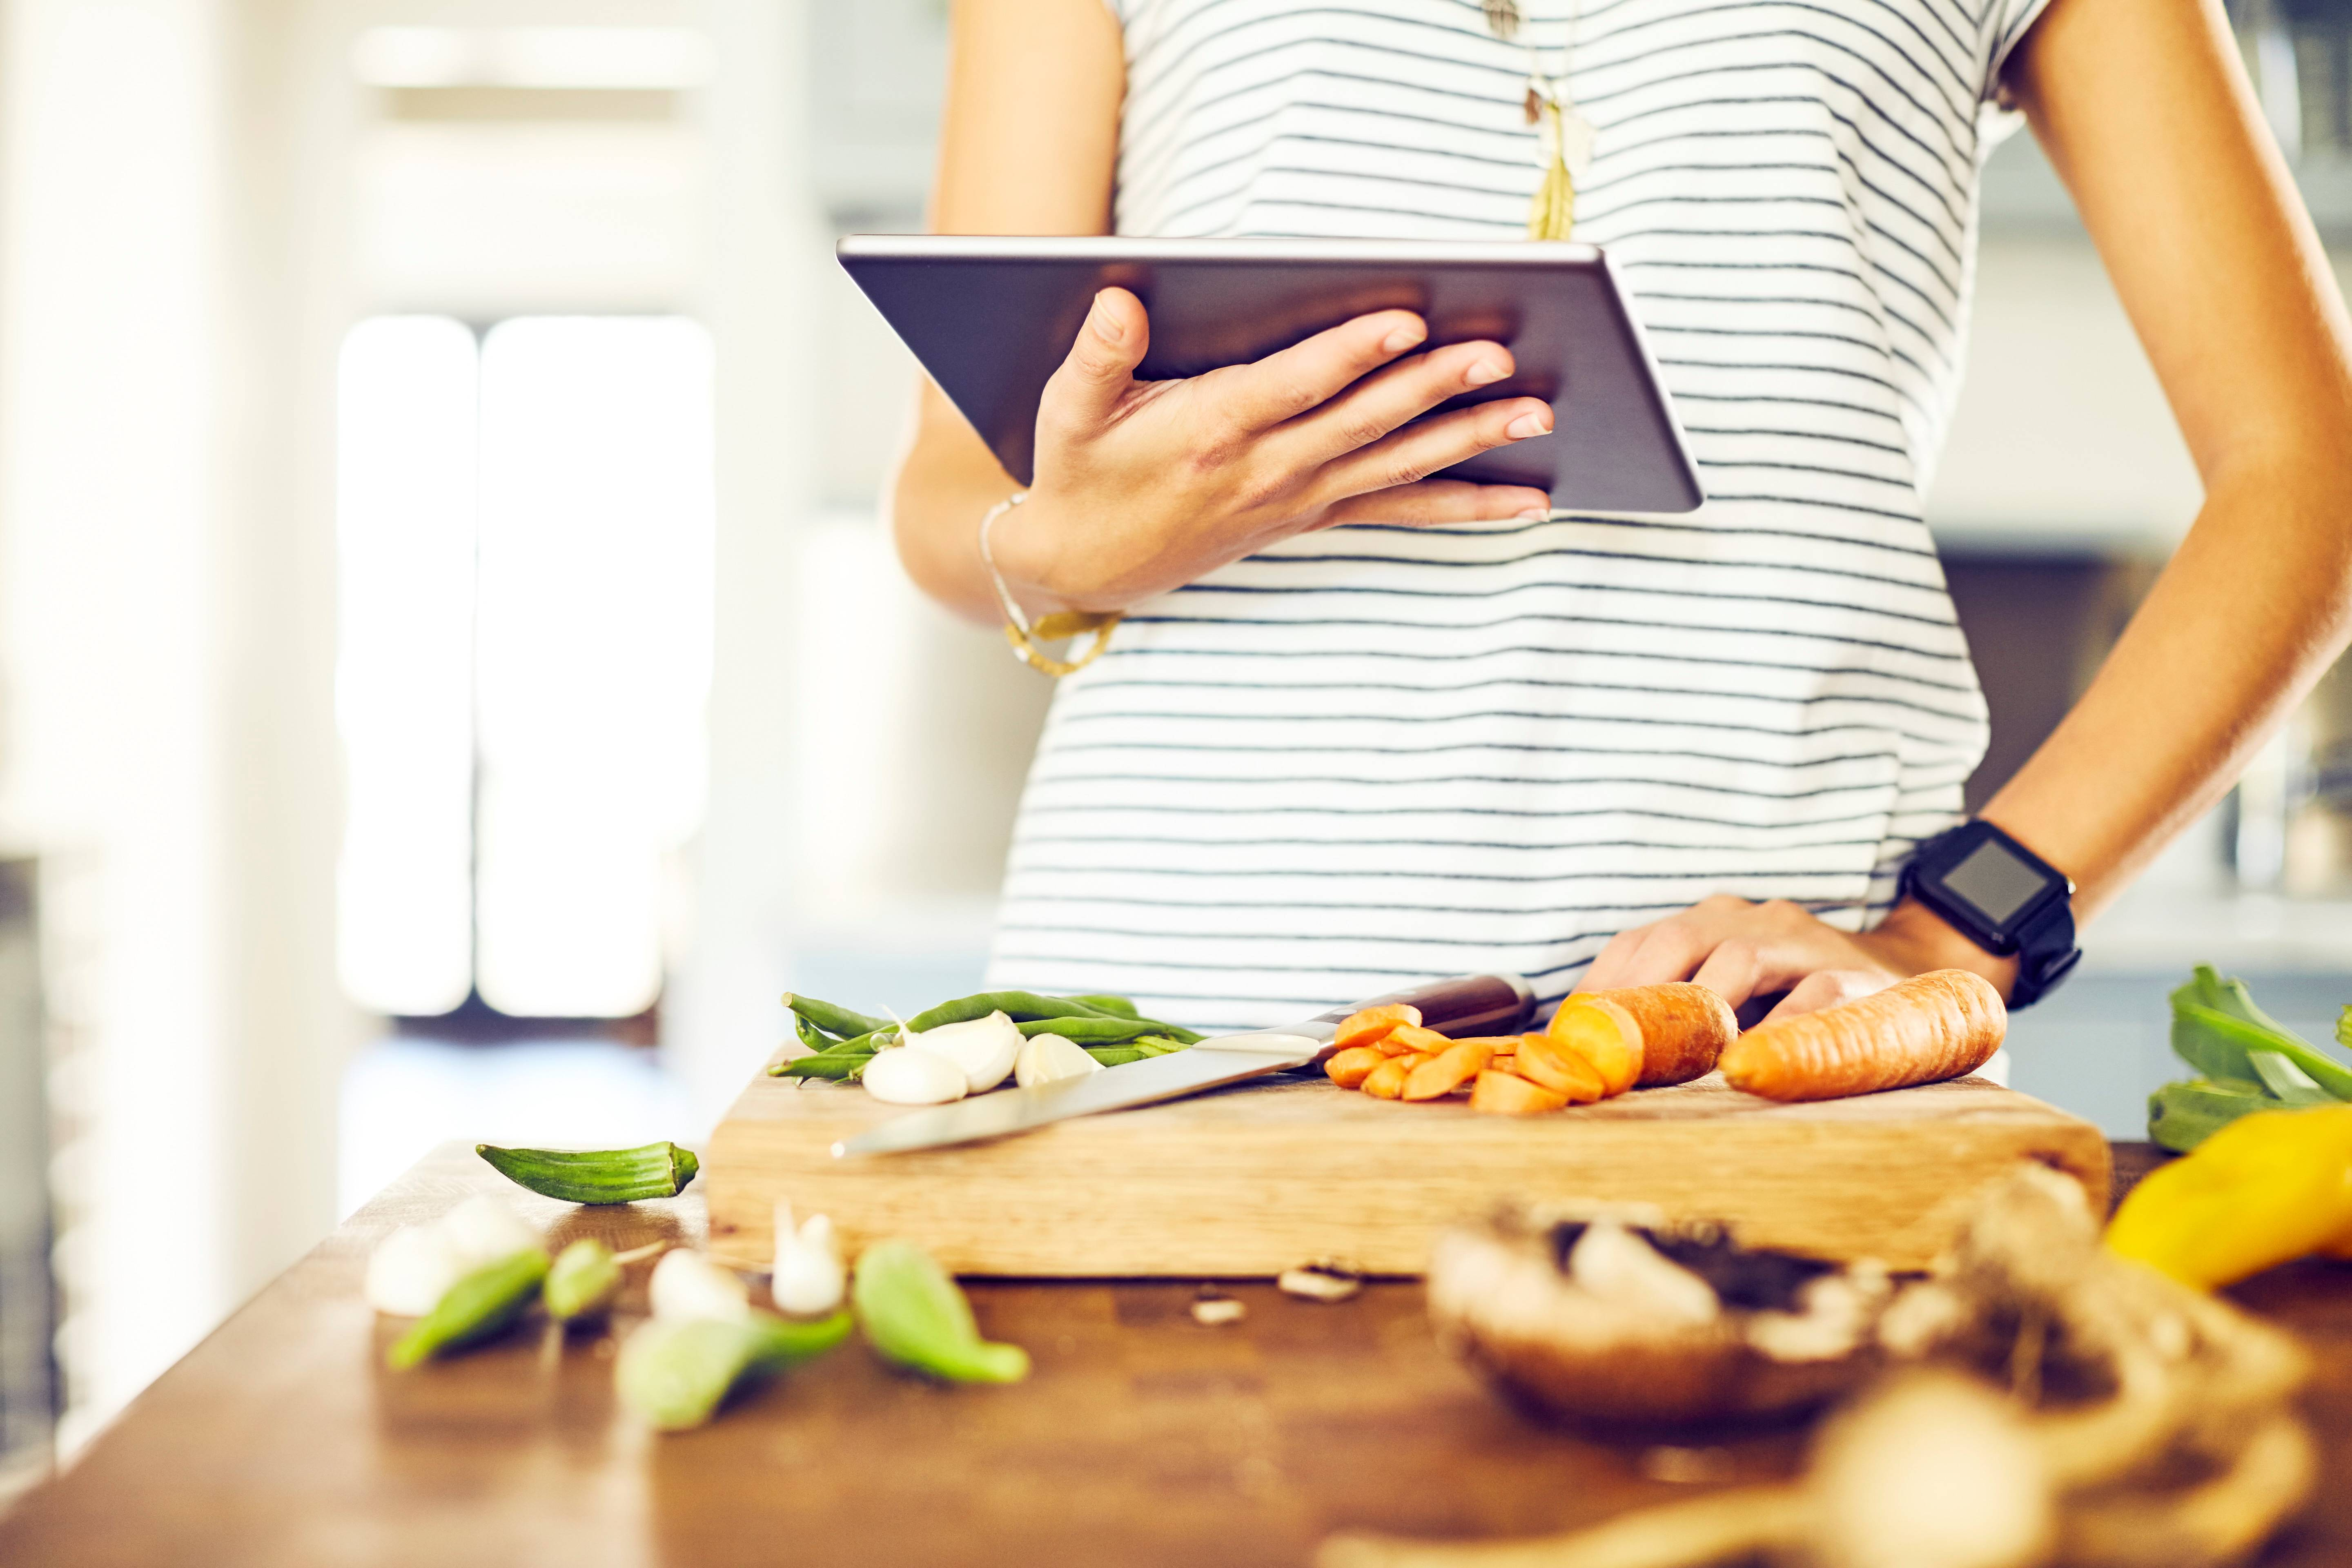 female looking up cooking term on ipad